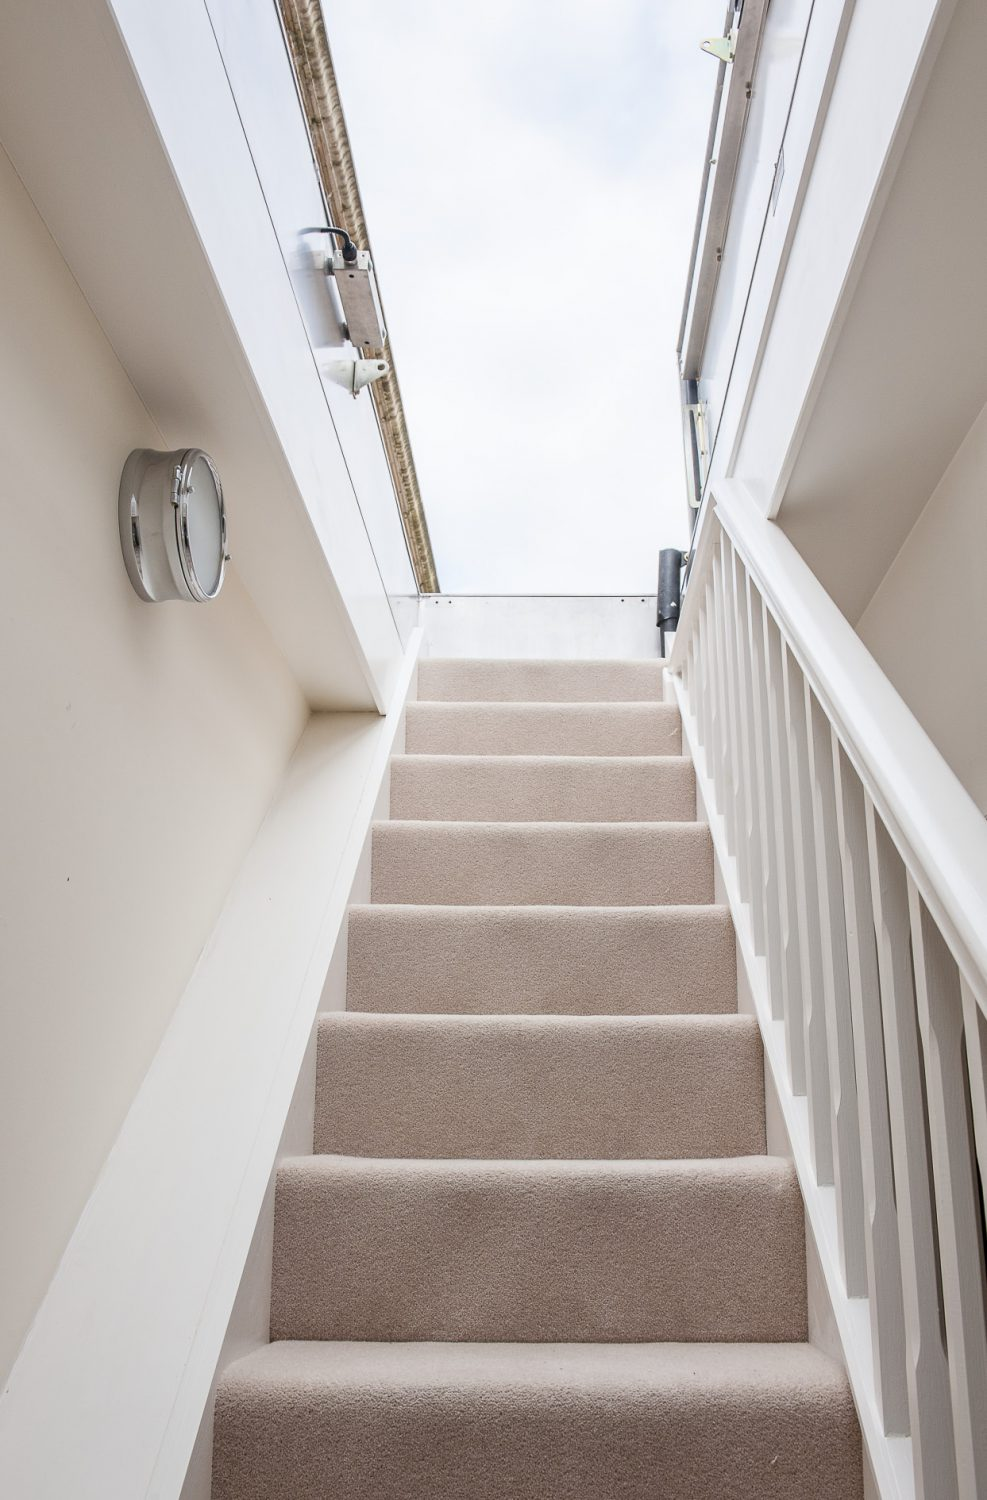 Stairs from the hallway lead up to the almost secret roof terrace which spans right across the top of the apartment